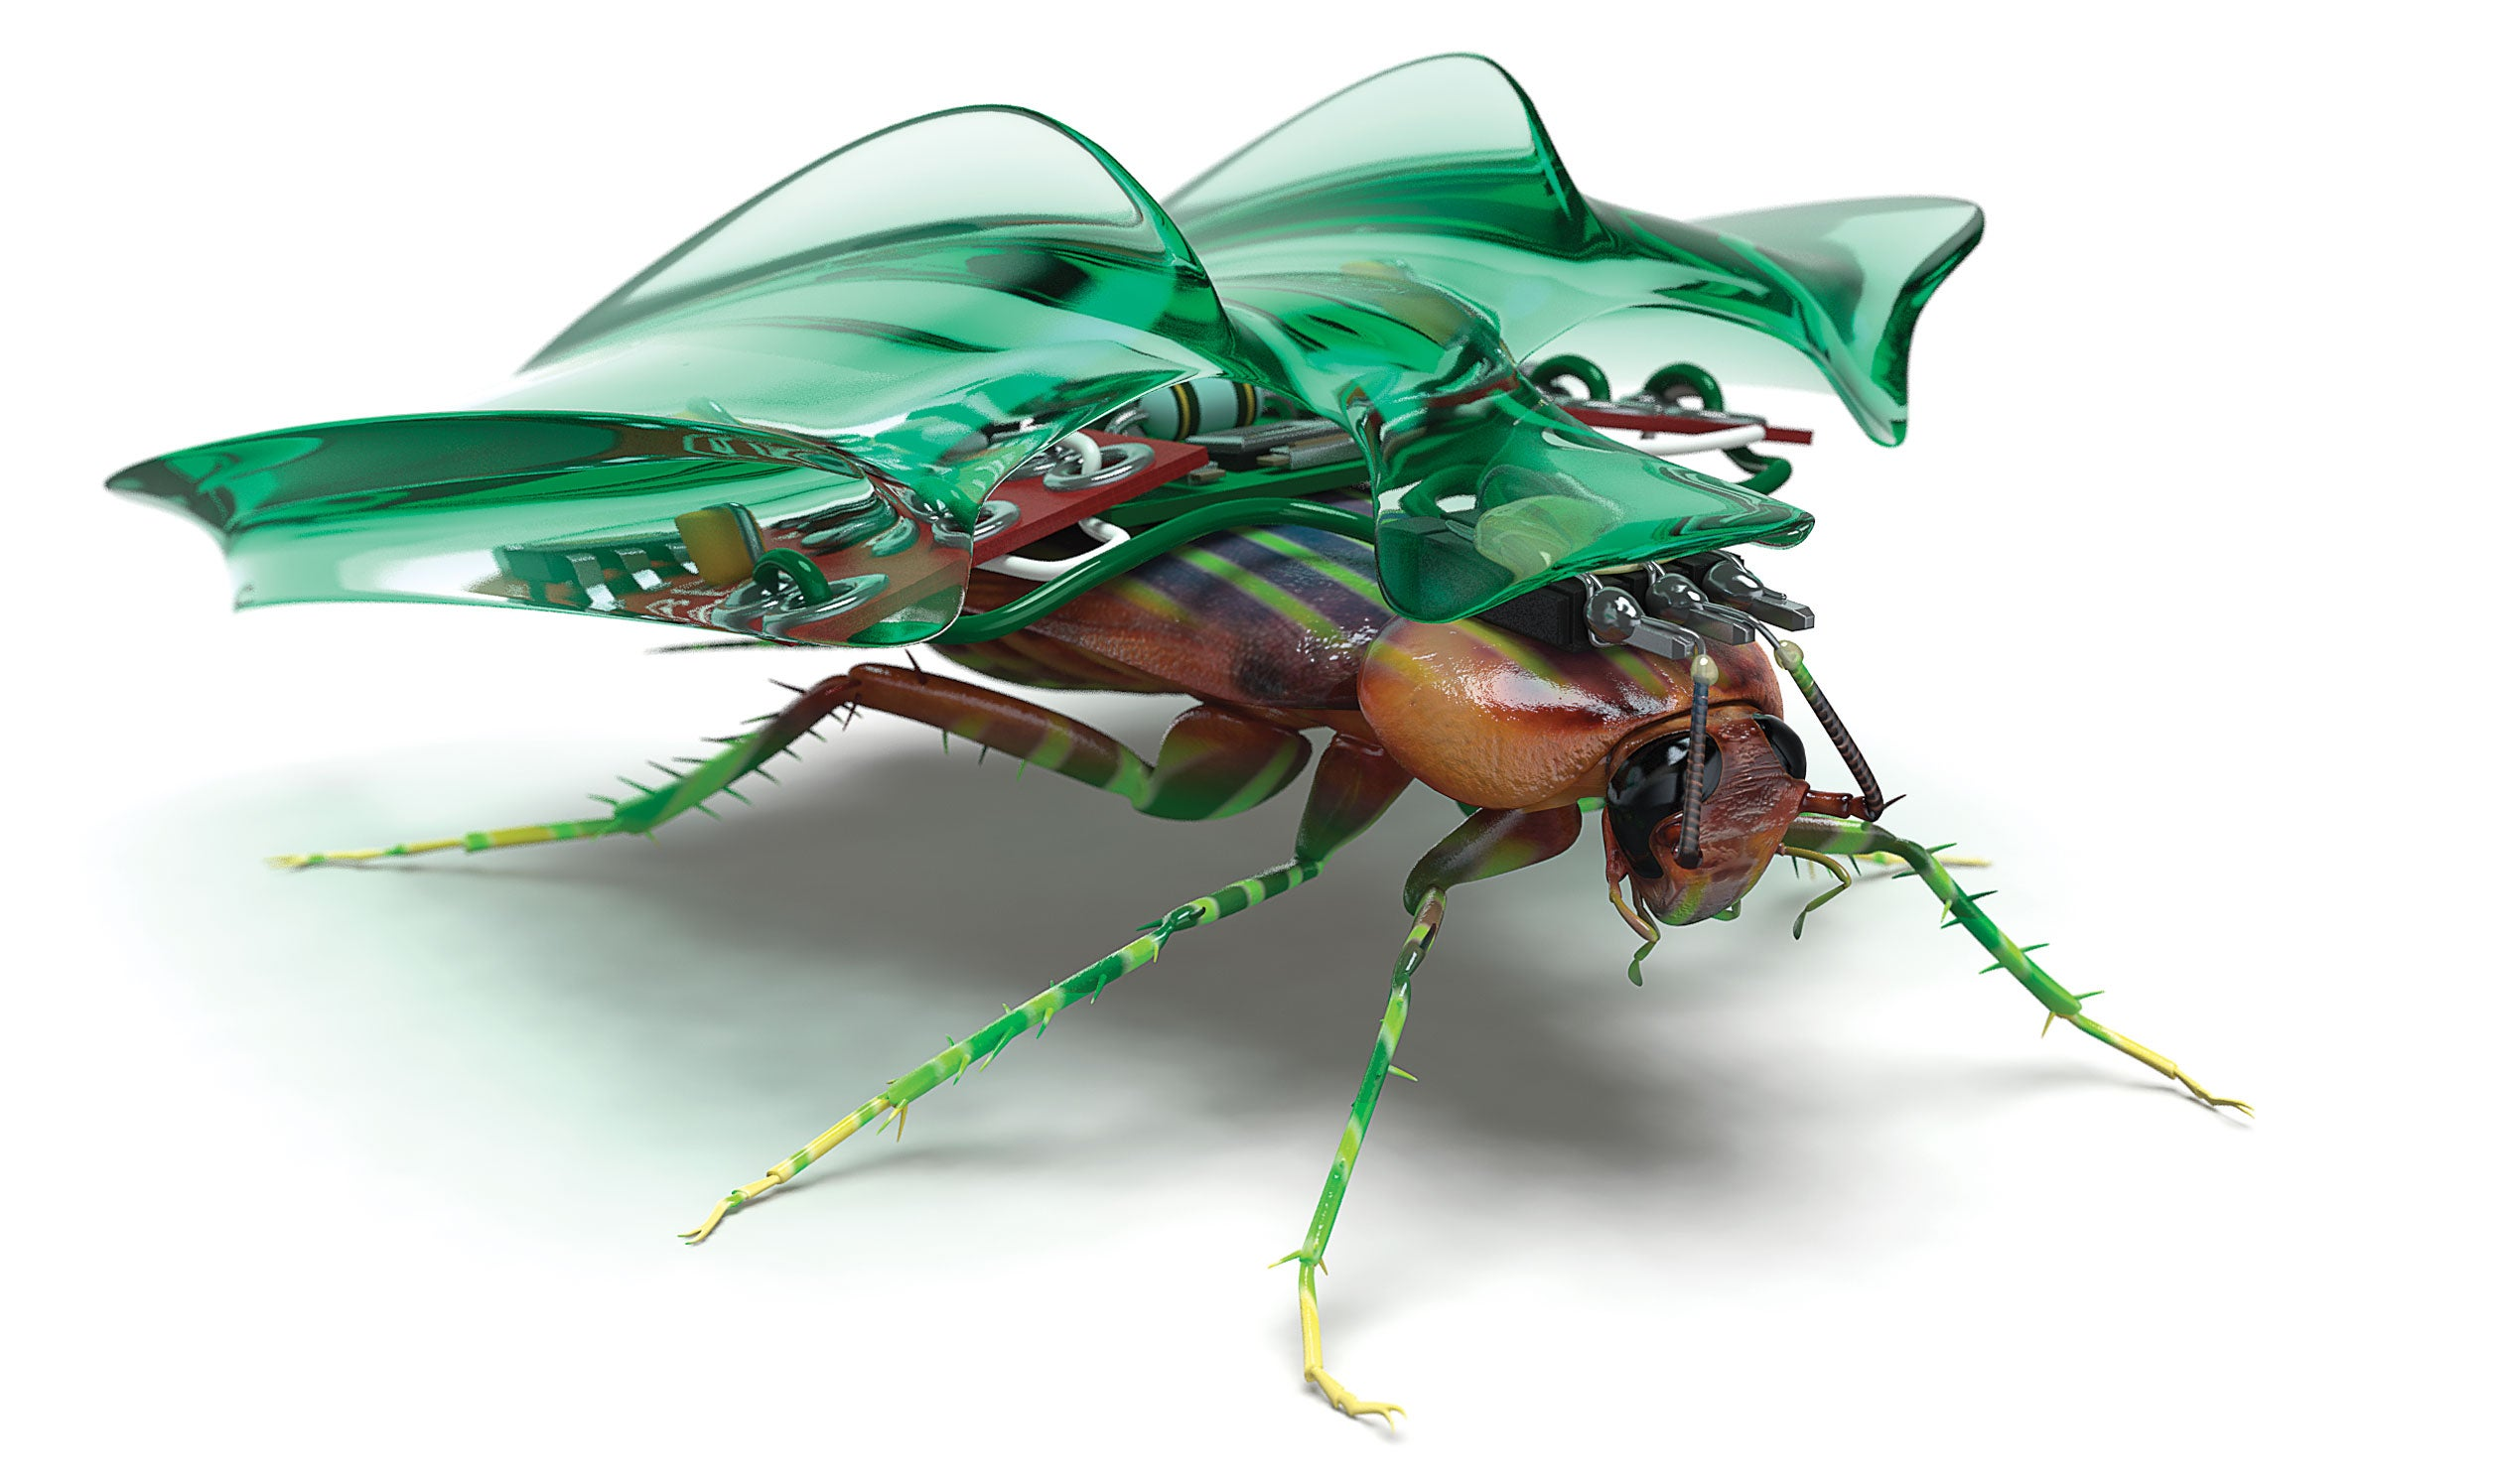 How To Build Your Own Cockroach Cyborg